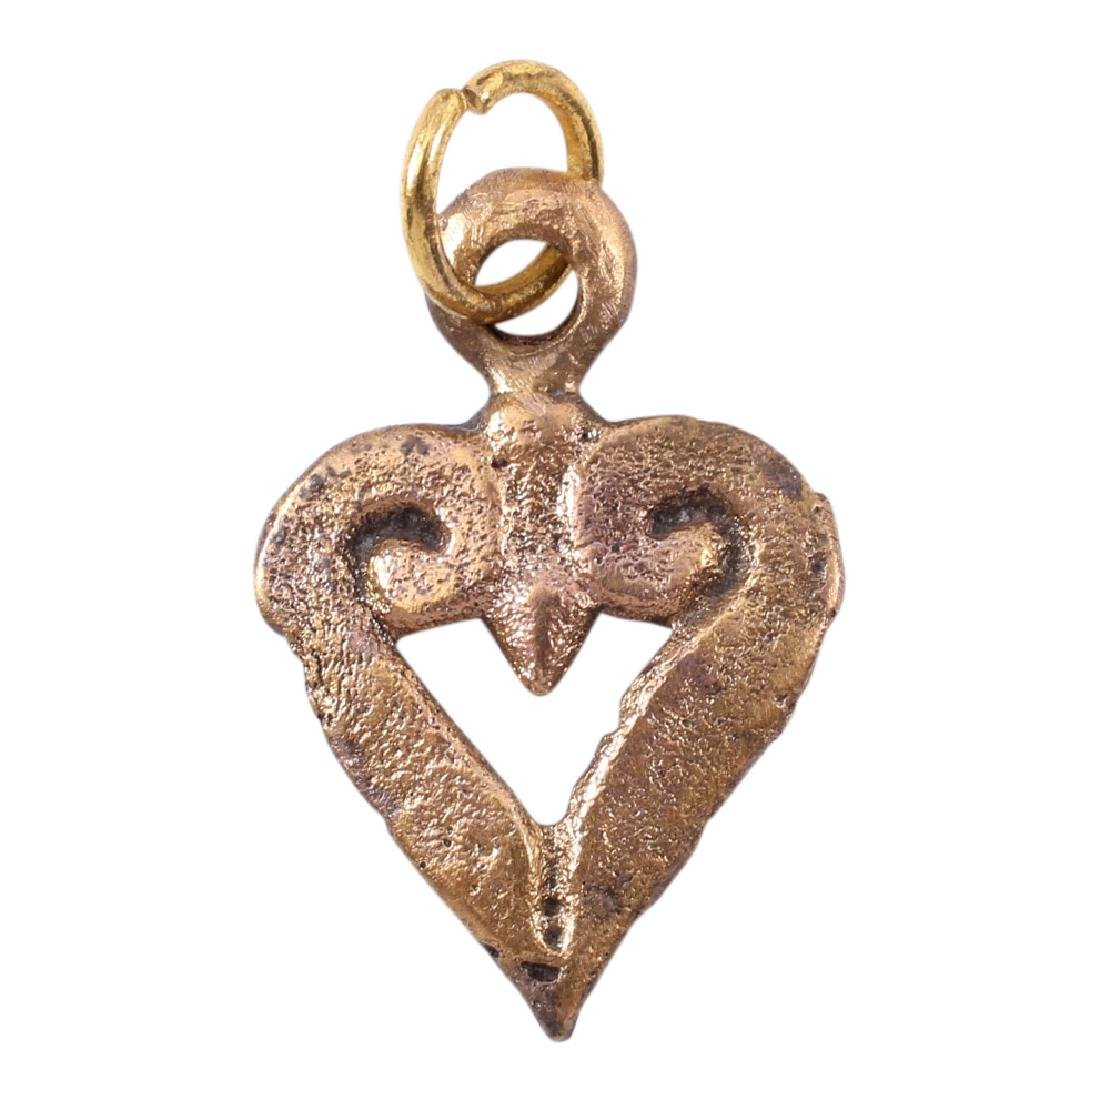 Viking Heart Pendant, 9th-10th Century